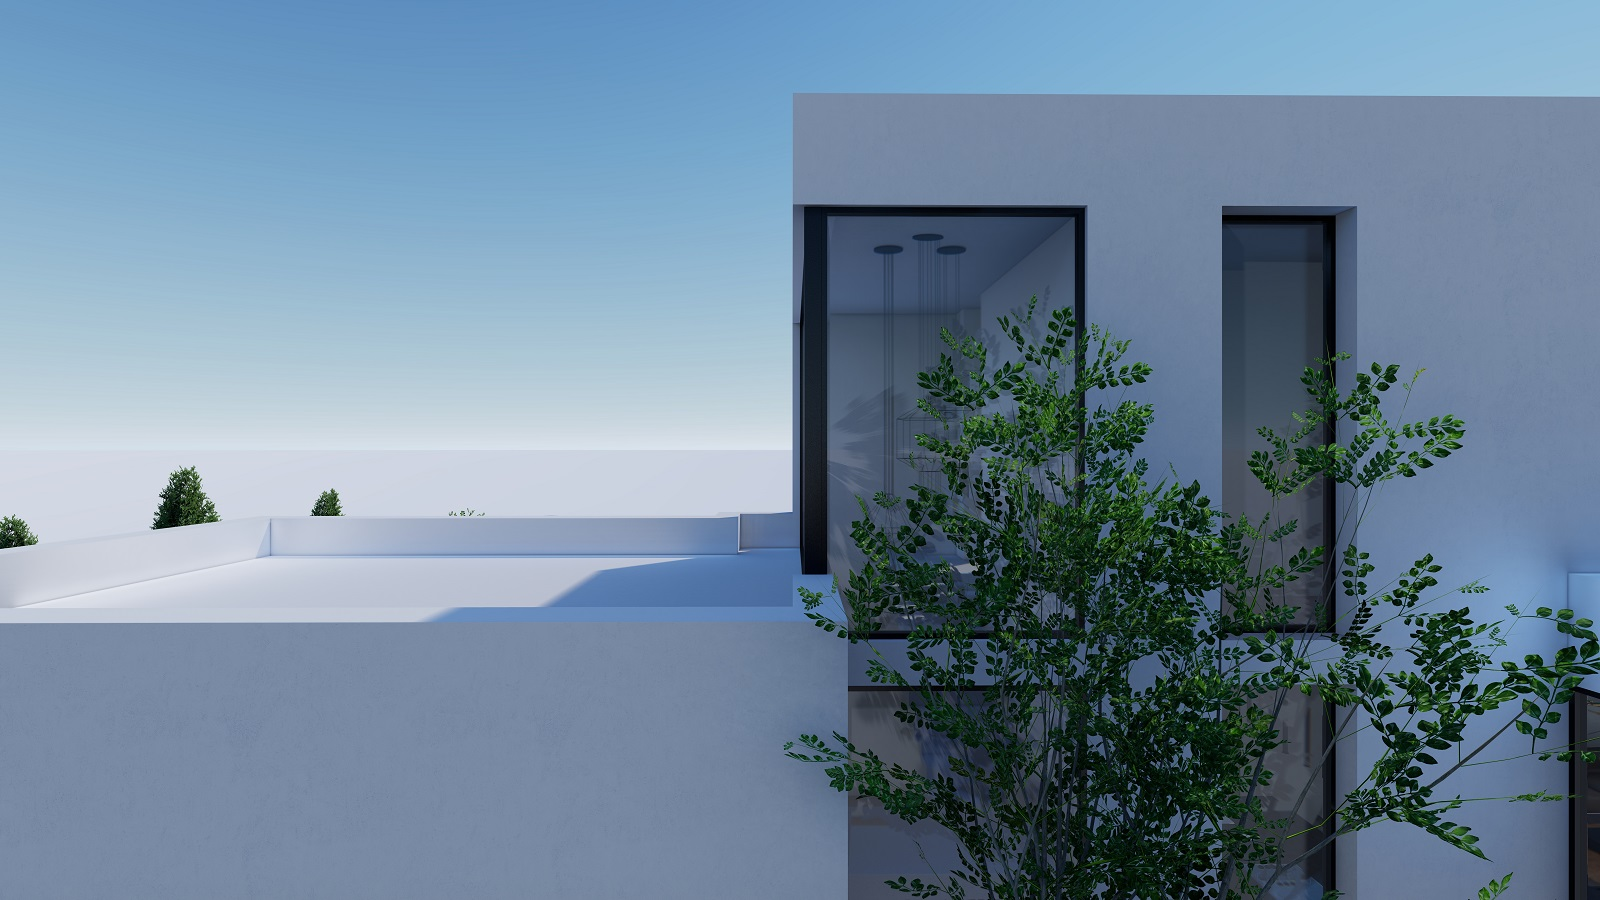 New Project of 2 Floor Detached Villas With a Private Pool and Views to the Sea in Polop, Alicante